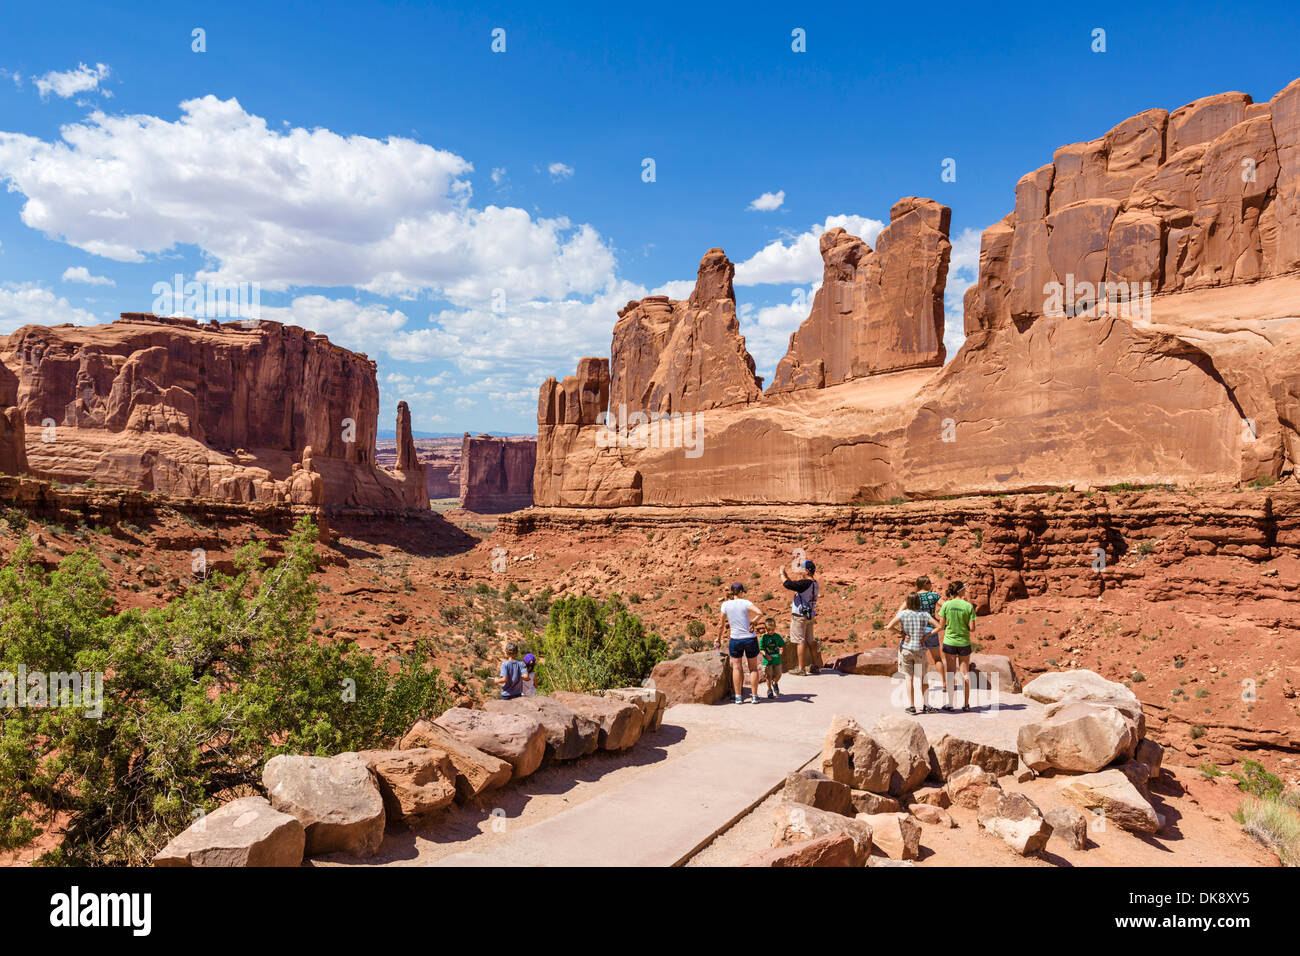 Walkers at the Park Avenue Viewpoint, Arches National Park, Utah, USA - Stock Image